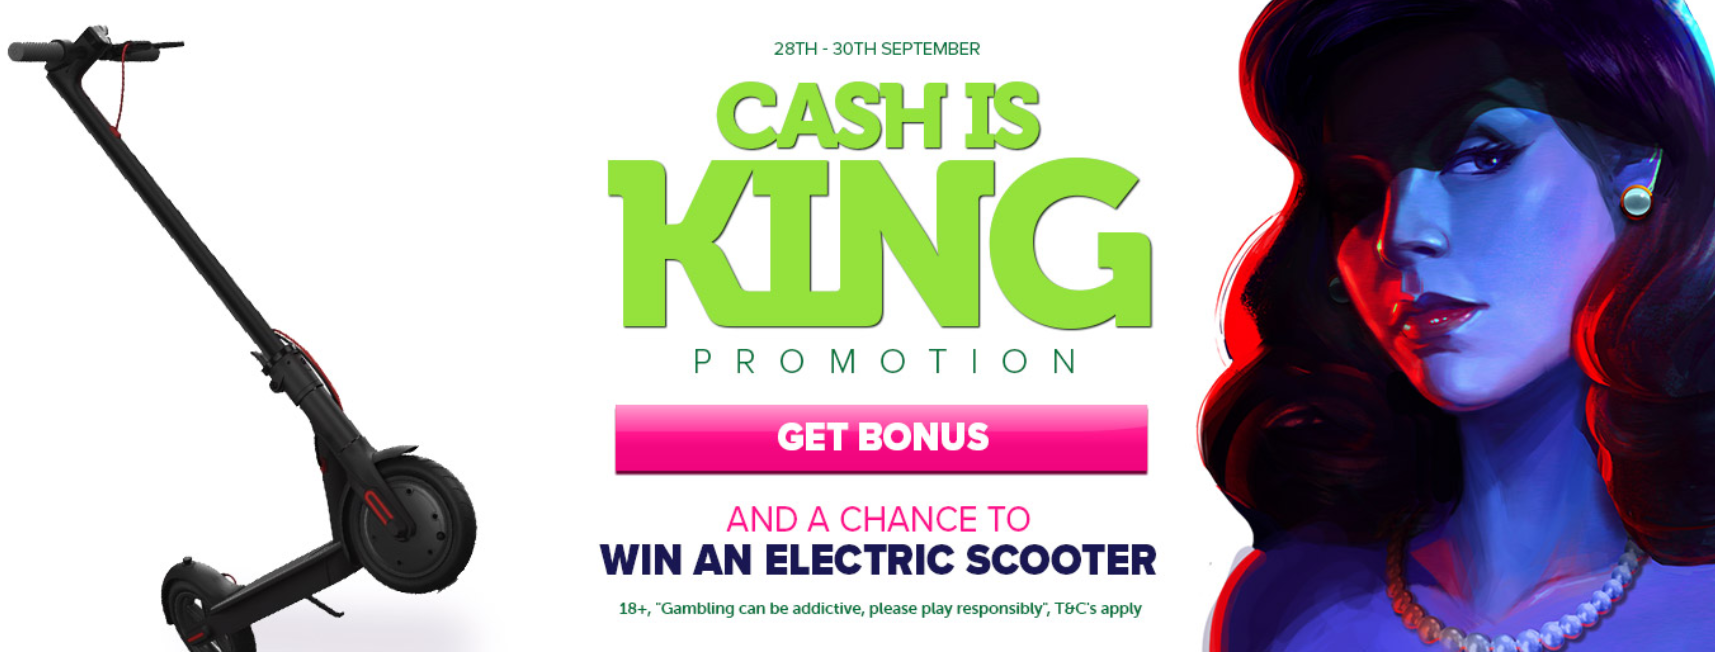 Cash is King, 3-day promotion and the chance to win a scooter